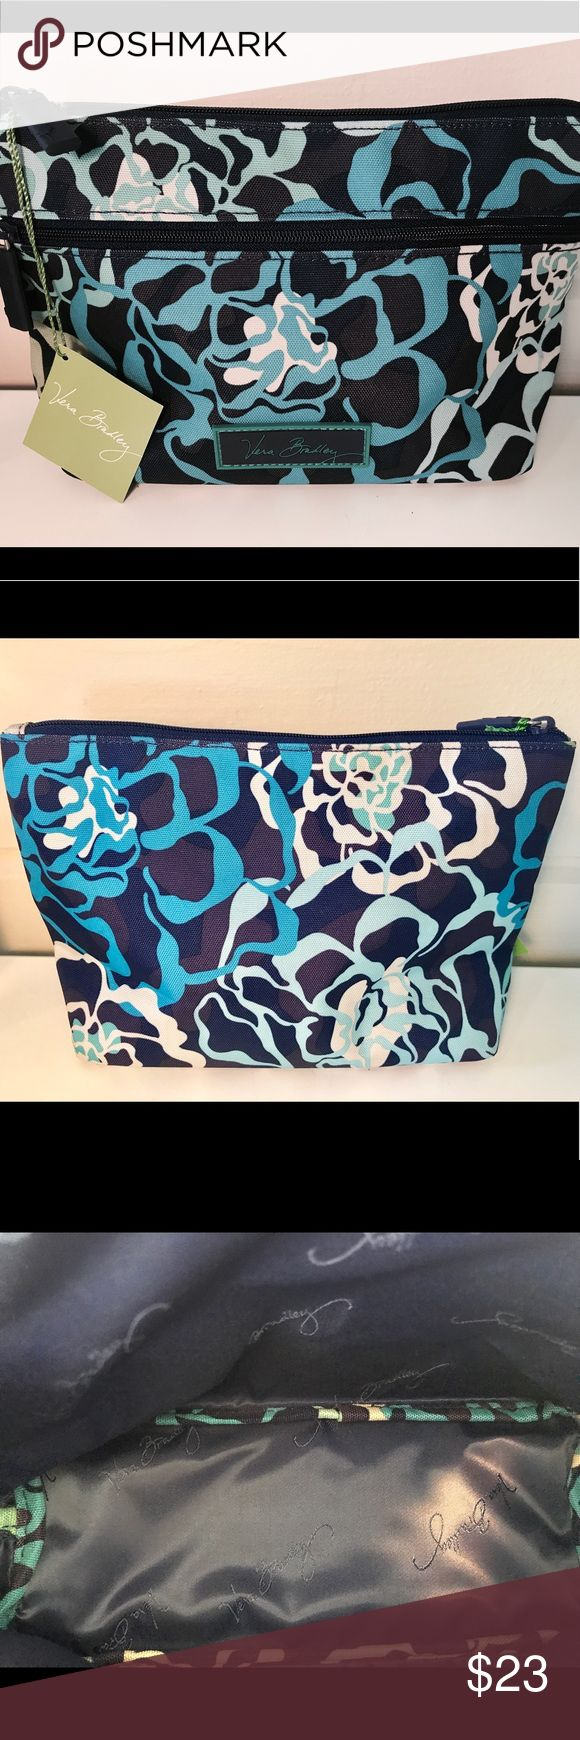 "VERA BRADLY  LIGHTEN UP TRAVEL COSMETIC BAG NWT BEAUTIFUL BLUE TONES VERA BRADLY  LIGHTEN UP TRAVEL COSMETIC BAG NWT ZIP CLOSURE AND SEPERATE ZIP POCKET 9 1/4"" W 6 1/2 H 3 1/2 D Vera Bradley Bags Cosmetic Bags & Cases"